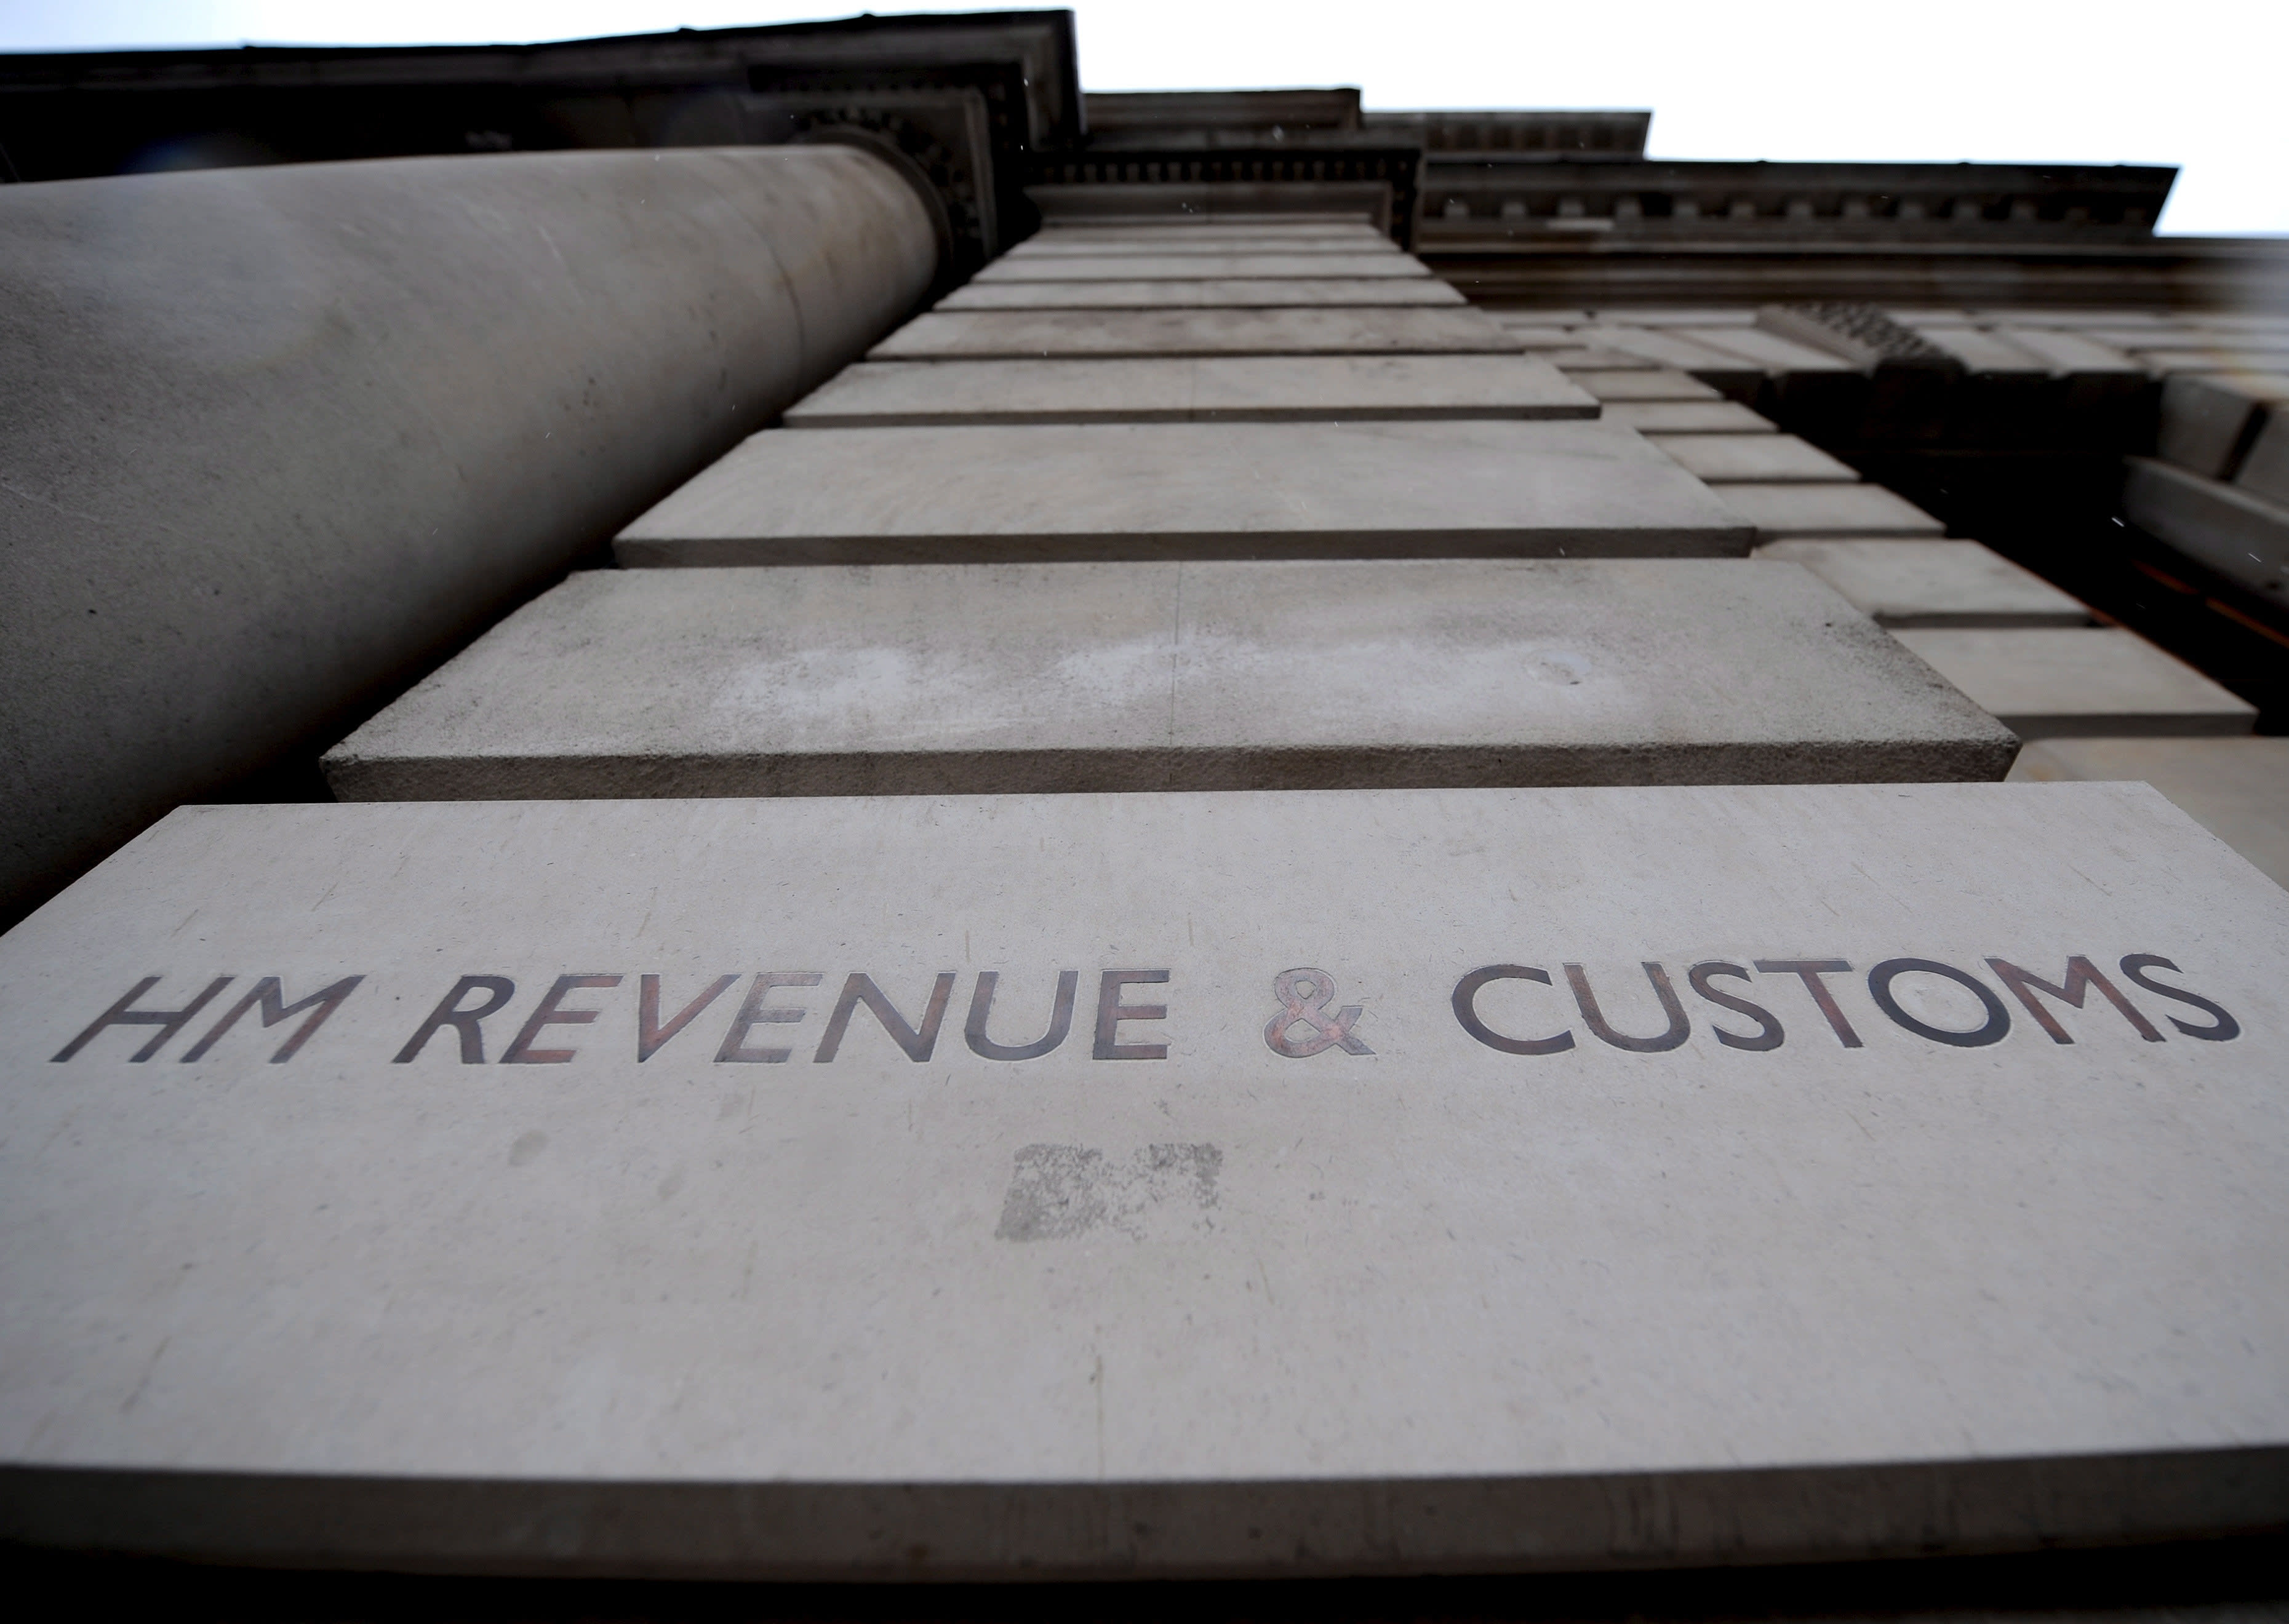 HMRC reveals top prosecutions of 2018